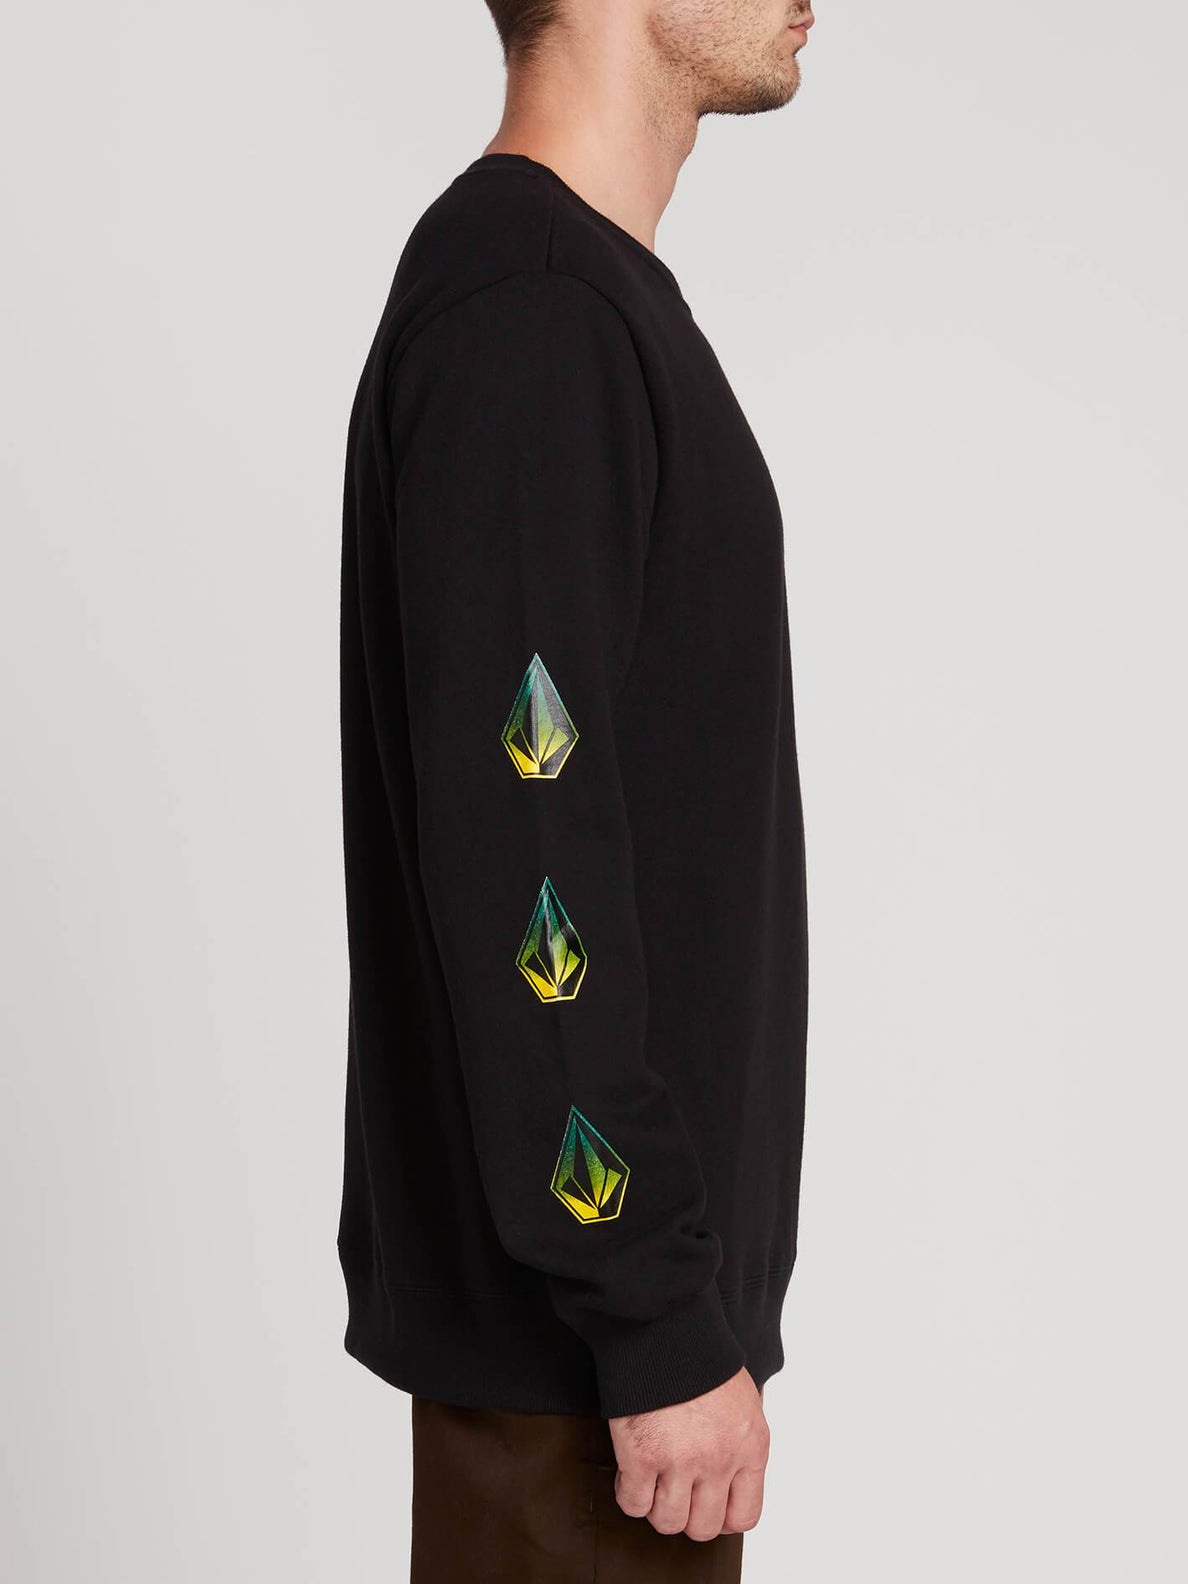 Deadly Stone Sweater - Black (A4631904_BLK) [1]